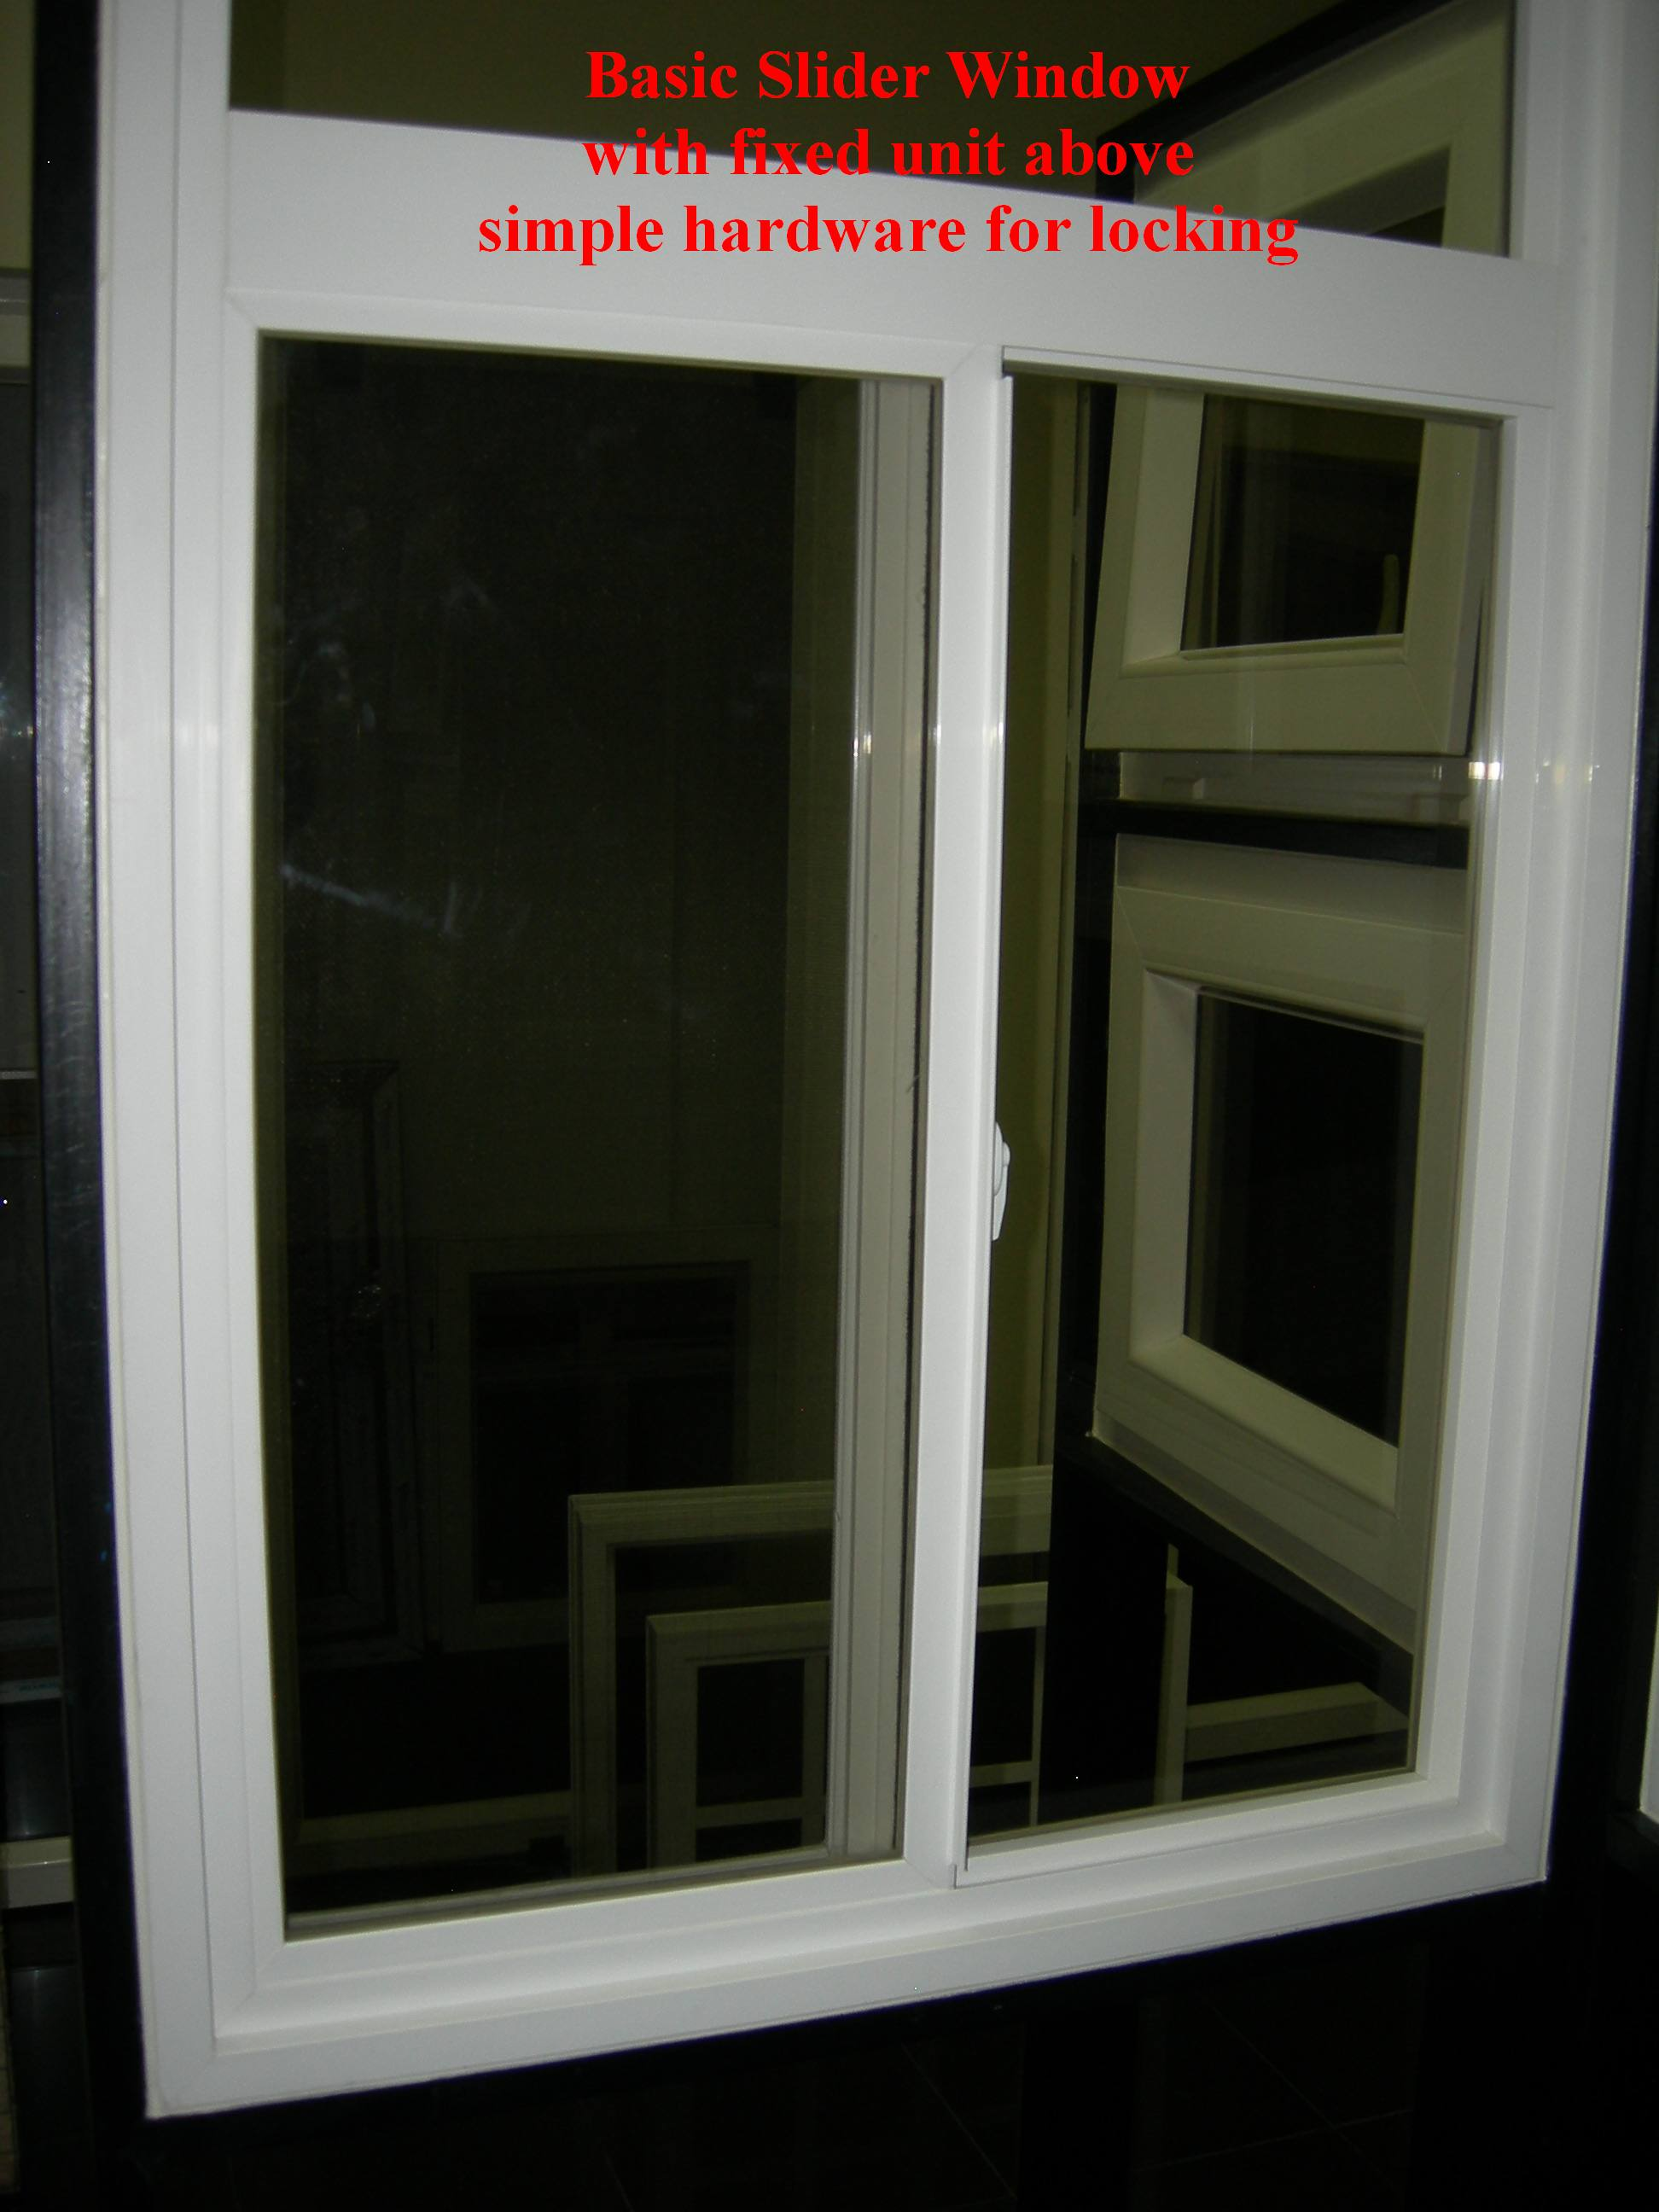 PVC slider window with transom above, slides with ease, most economical design, Montaña Paraiso, Escazu, Costa Rica